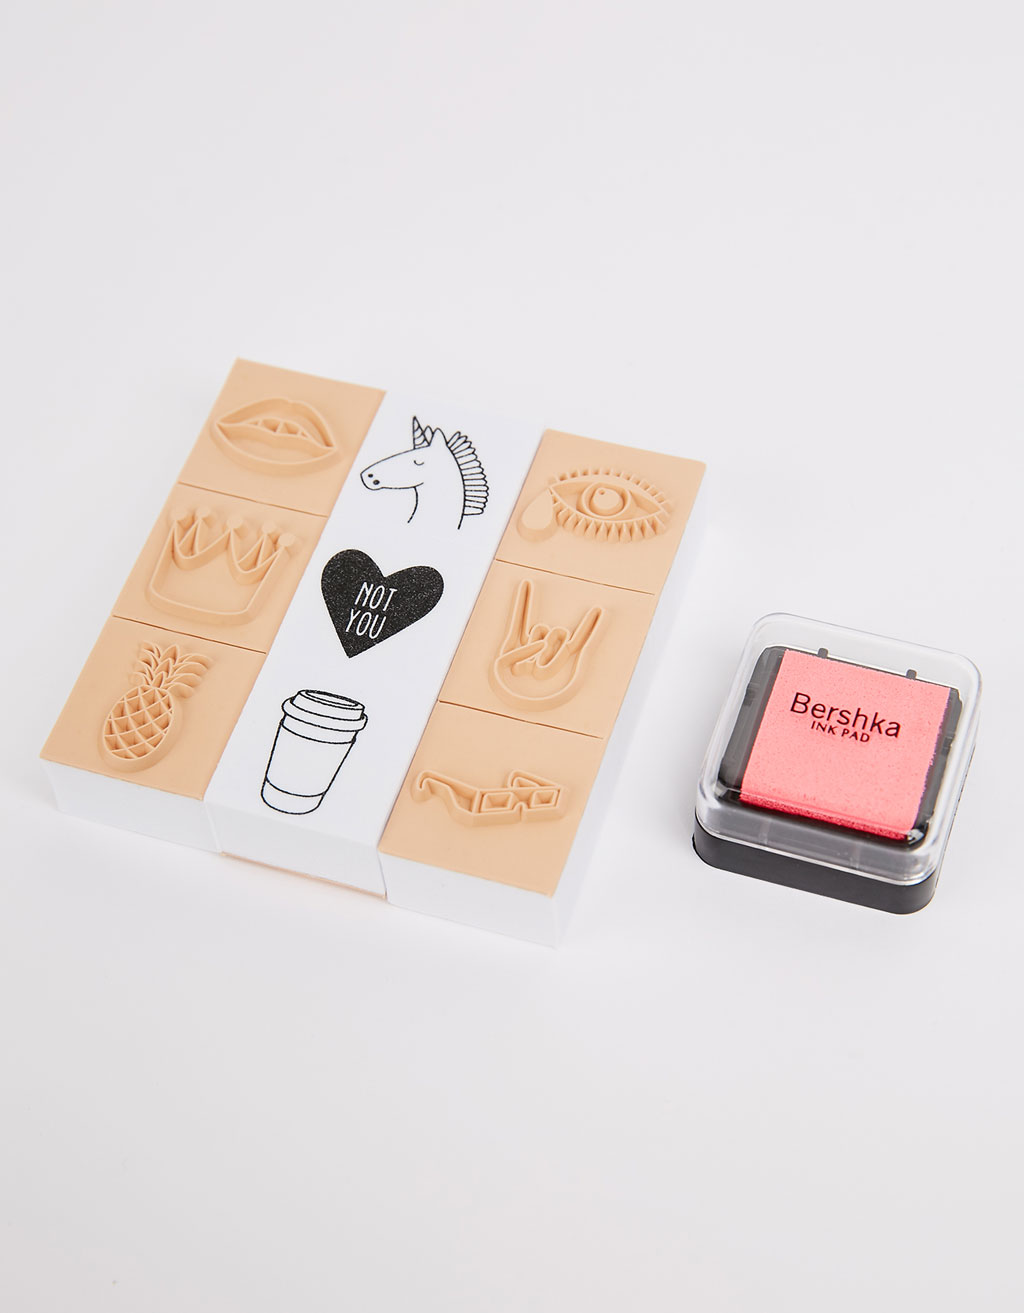 Ink and stamp set